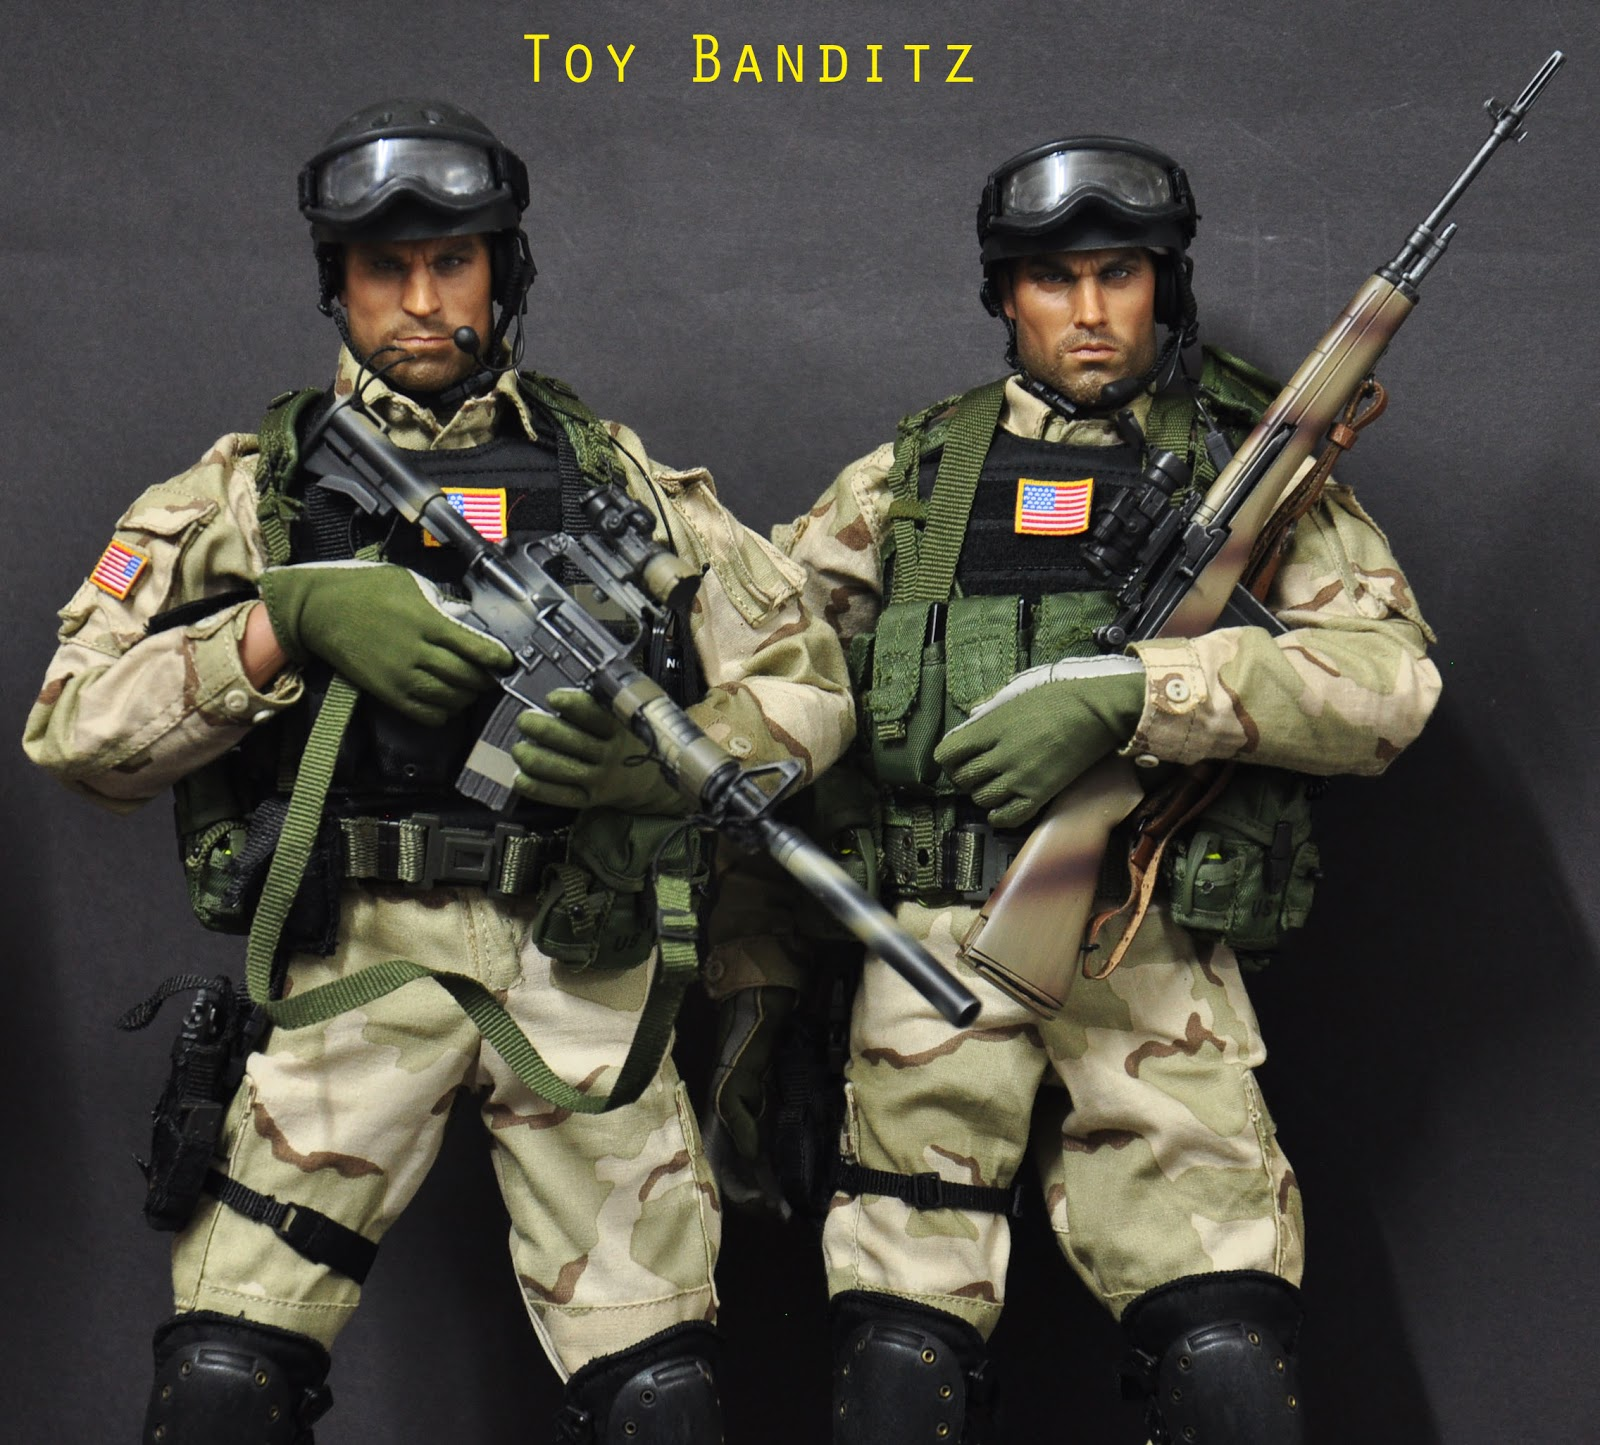 Randy Shughart and Gary Gordon http://toybanditz.blogspot.com/2012/10/sergeant-first-class-randy-shughart-by.html